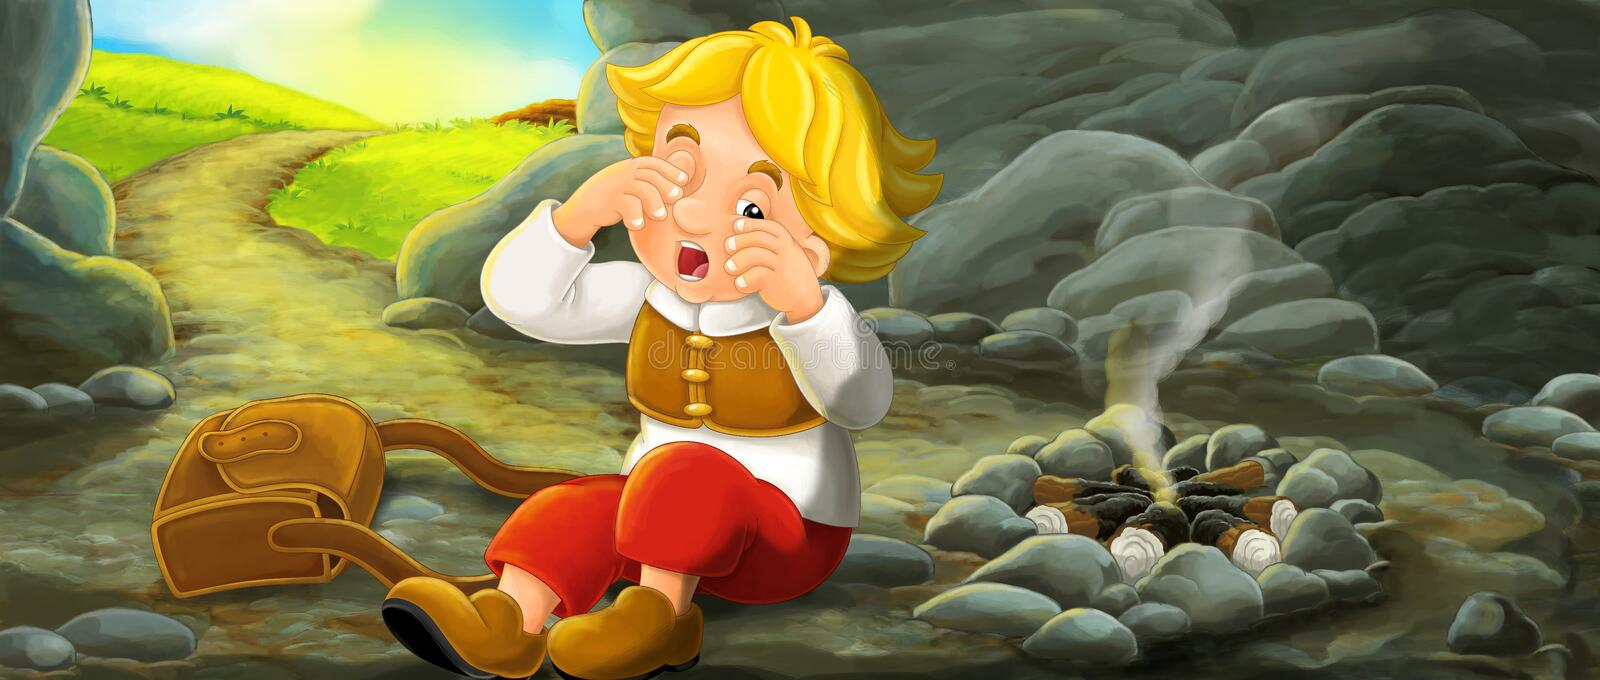 Cartoon scene of young traveler waking up in the cave during his trip - vintage looking person stock illustration